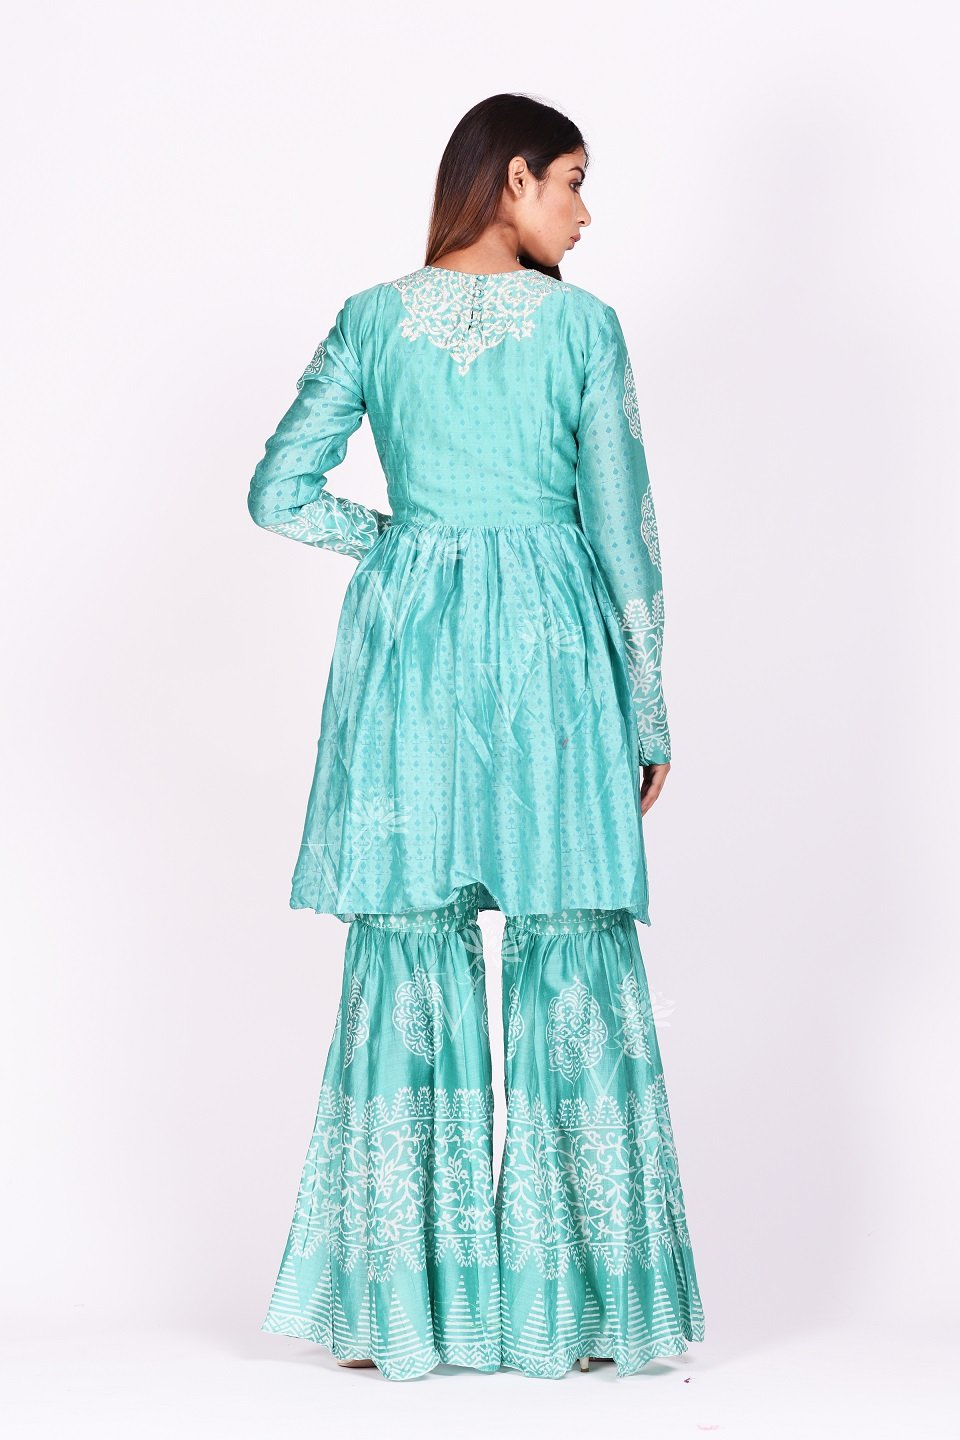 Buy stunning mint green printed silk sharara set online in USA. Make a stunning fashion statement at weddings and special occasions with an exquisite collection of designer Anarkali suits, designer lehengas, Indian designer dresses from Pure Elegance Indian fashion store in USA. -back